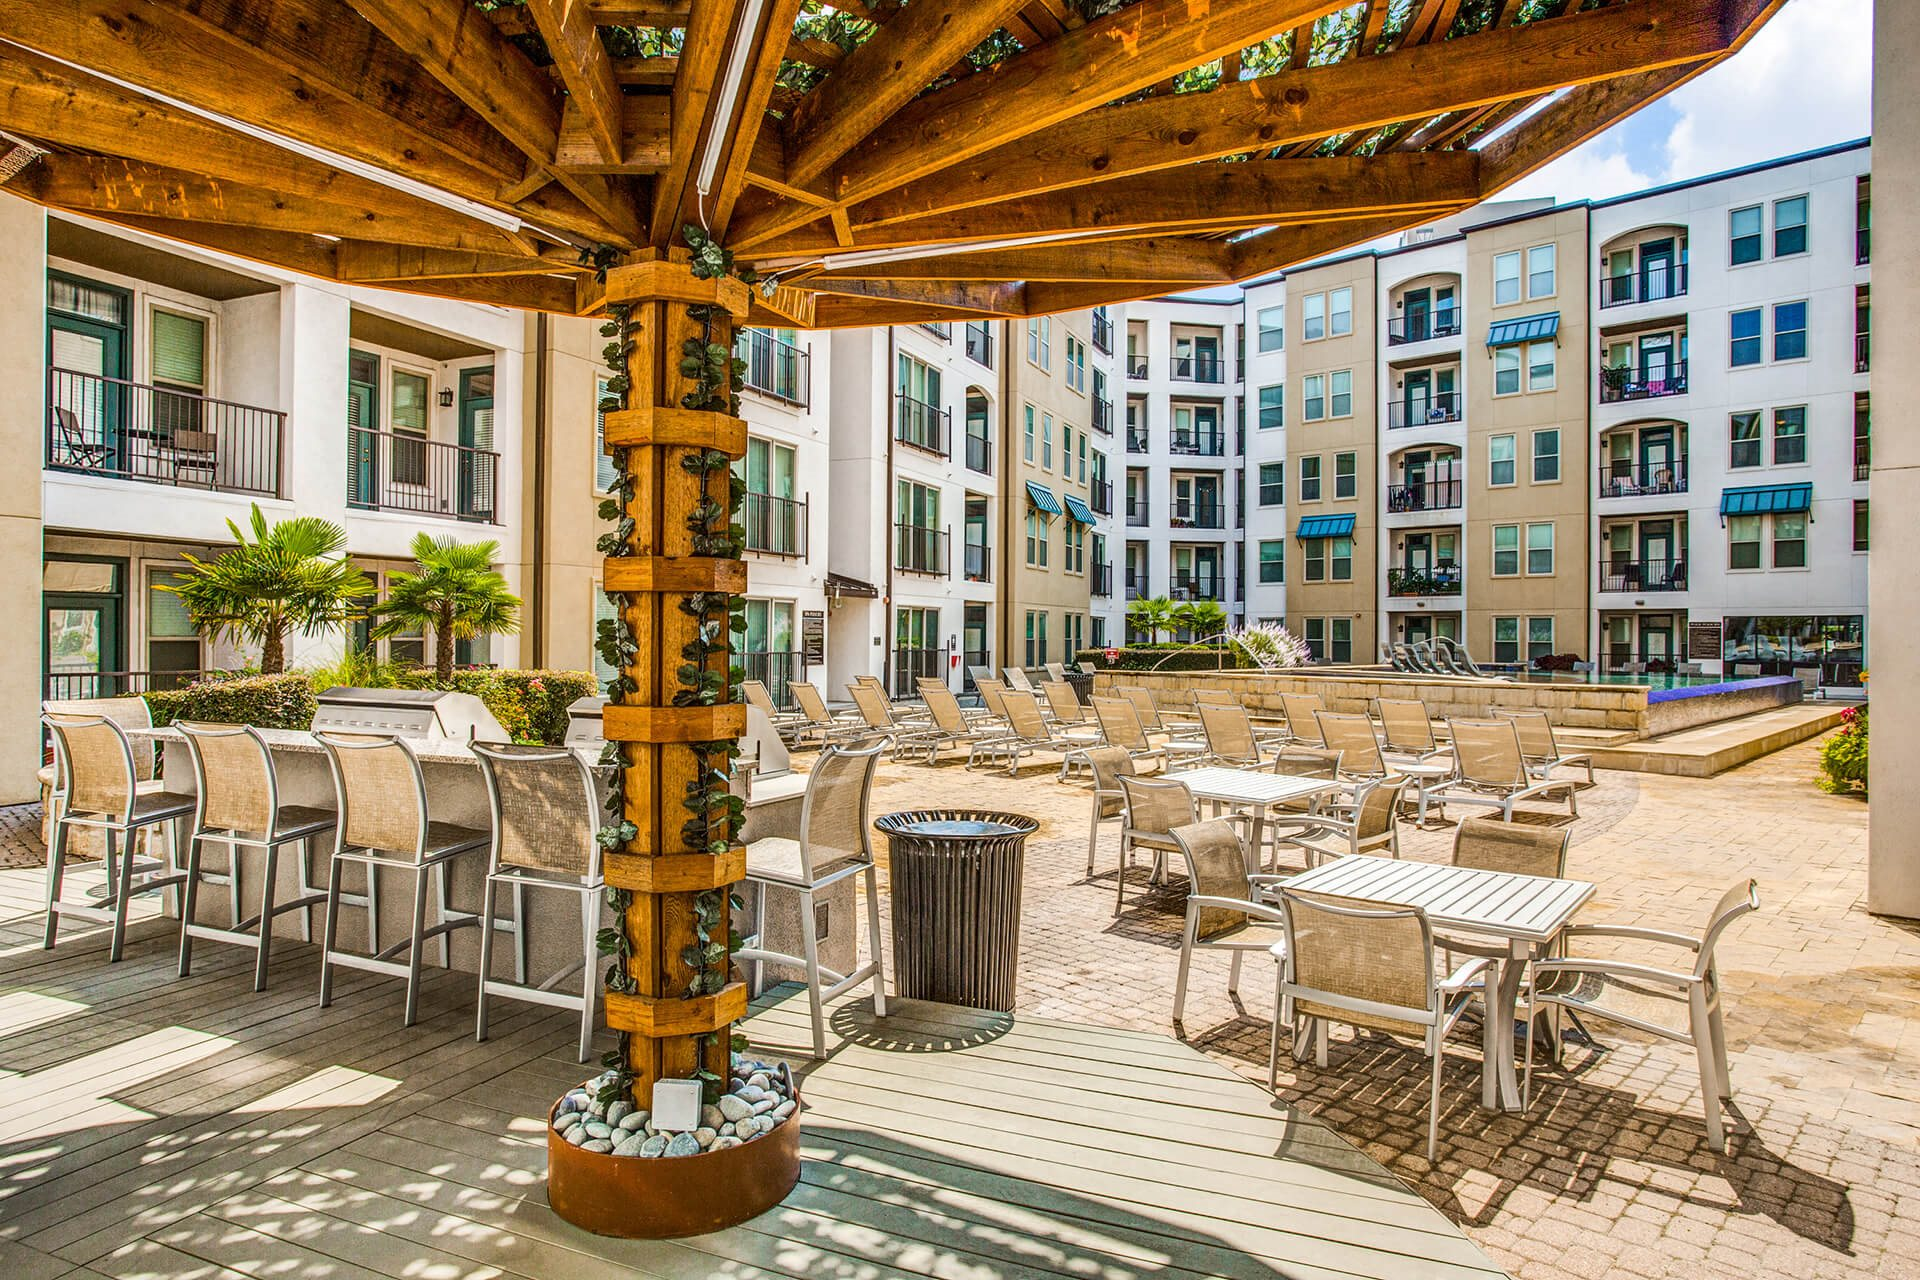 Outdoor seating area at The Monterey by Windsor, 75240, TX